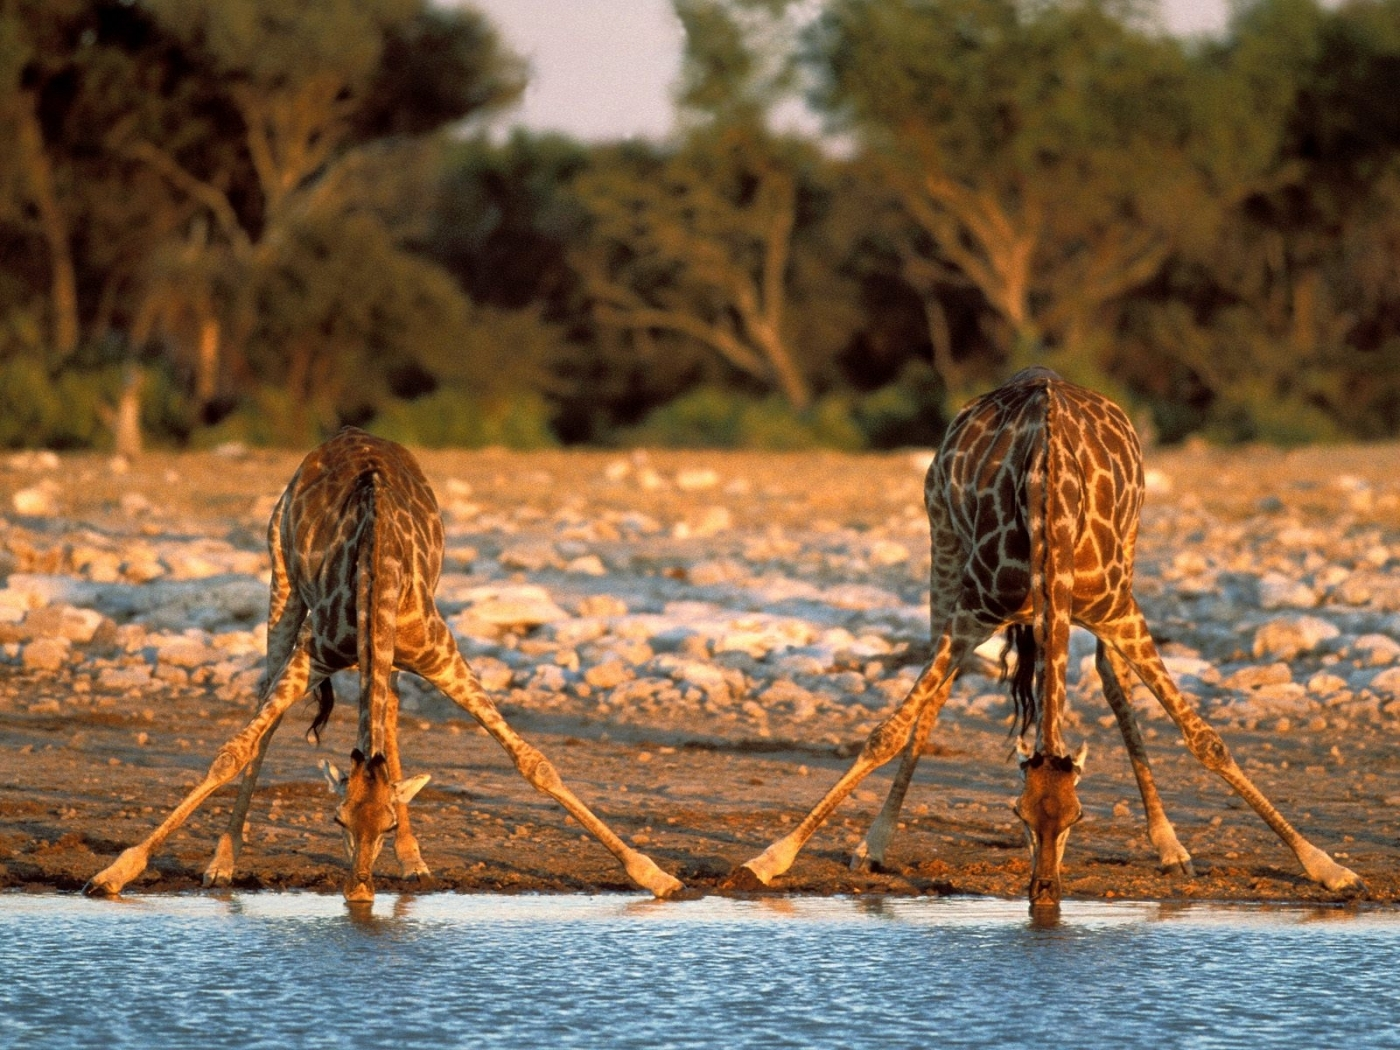 47499 download wallpaper Animals, Giraffes screensavers and pictures for free